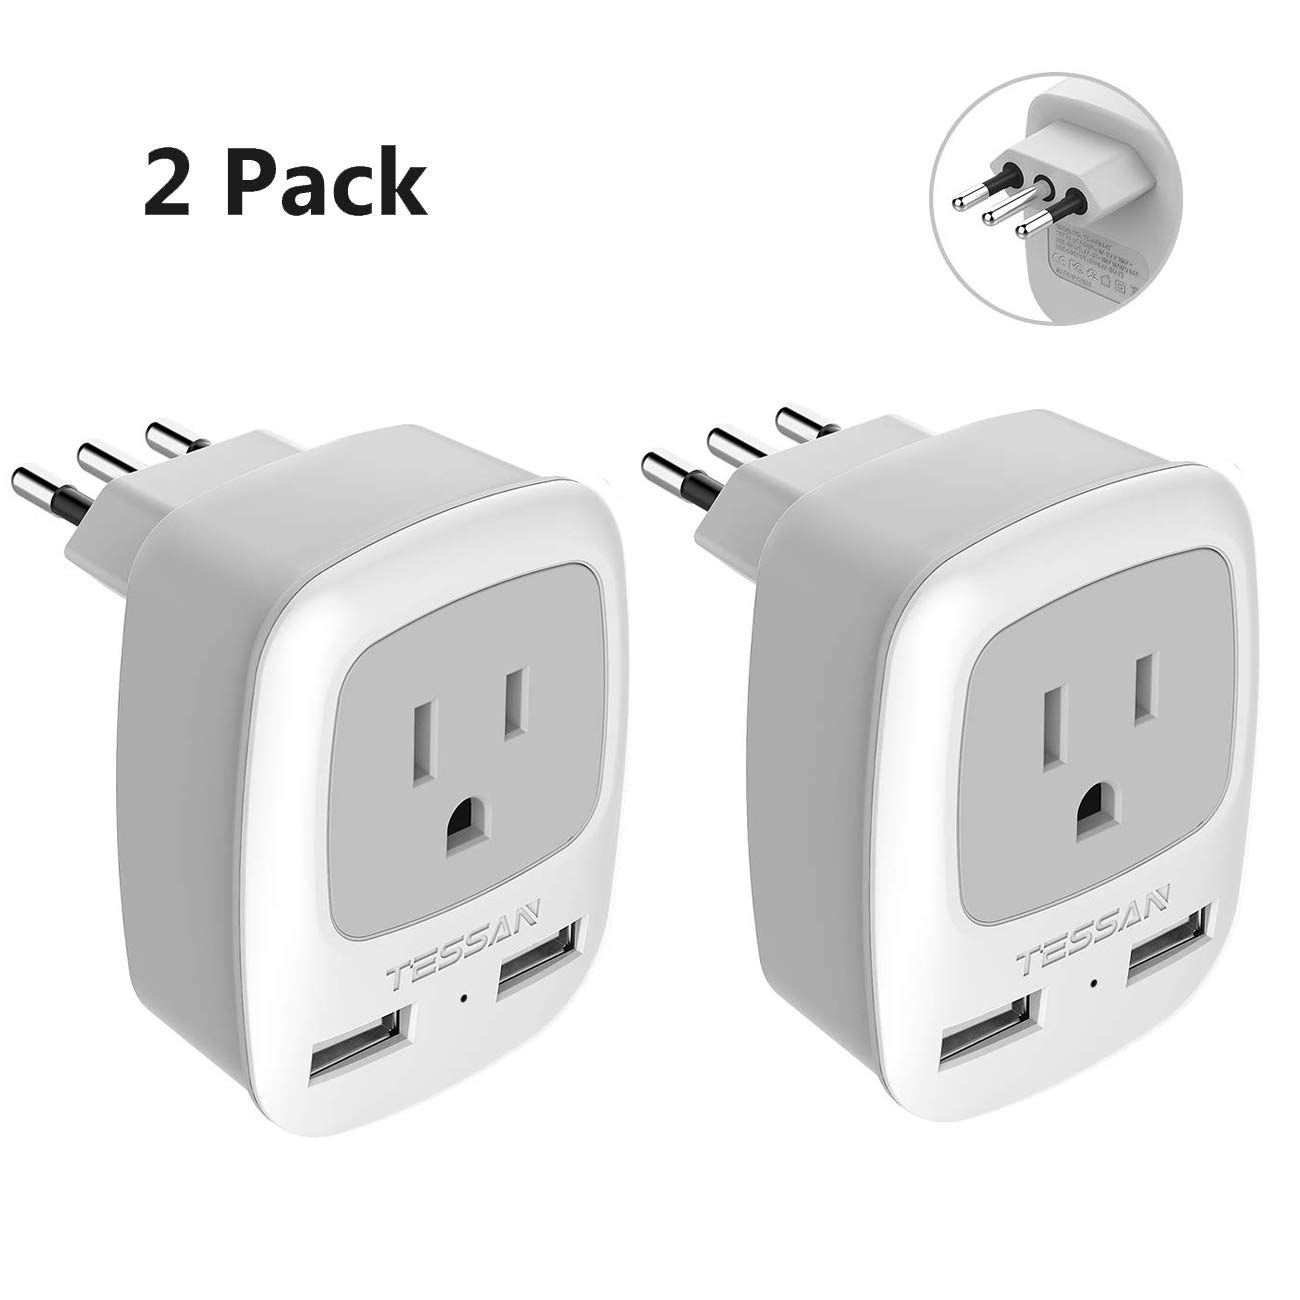 Italy Travel Plug Adapter 2 Pack, TESSAN 3 in 1 Grounded International Power Outlet Adaptor with 2 USB Ports for USA to Chile Uruguay (Type L)